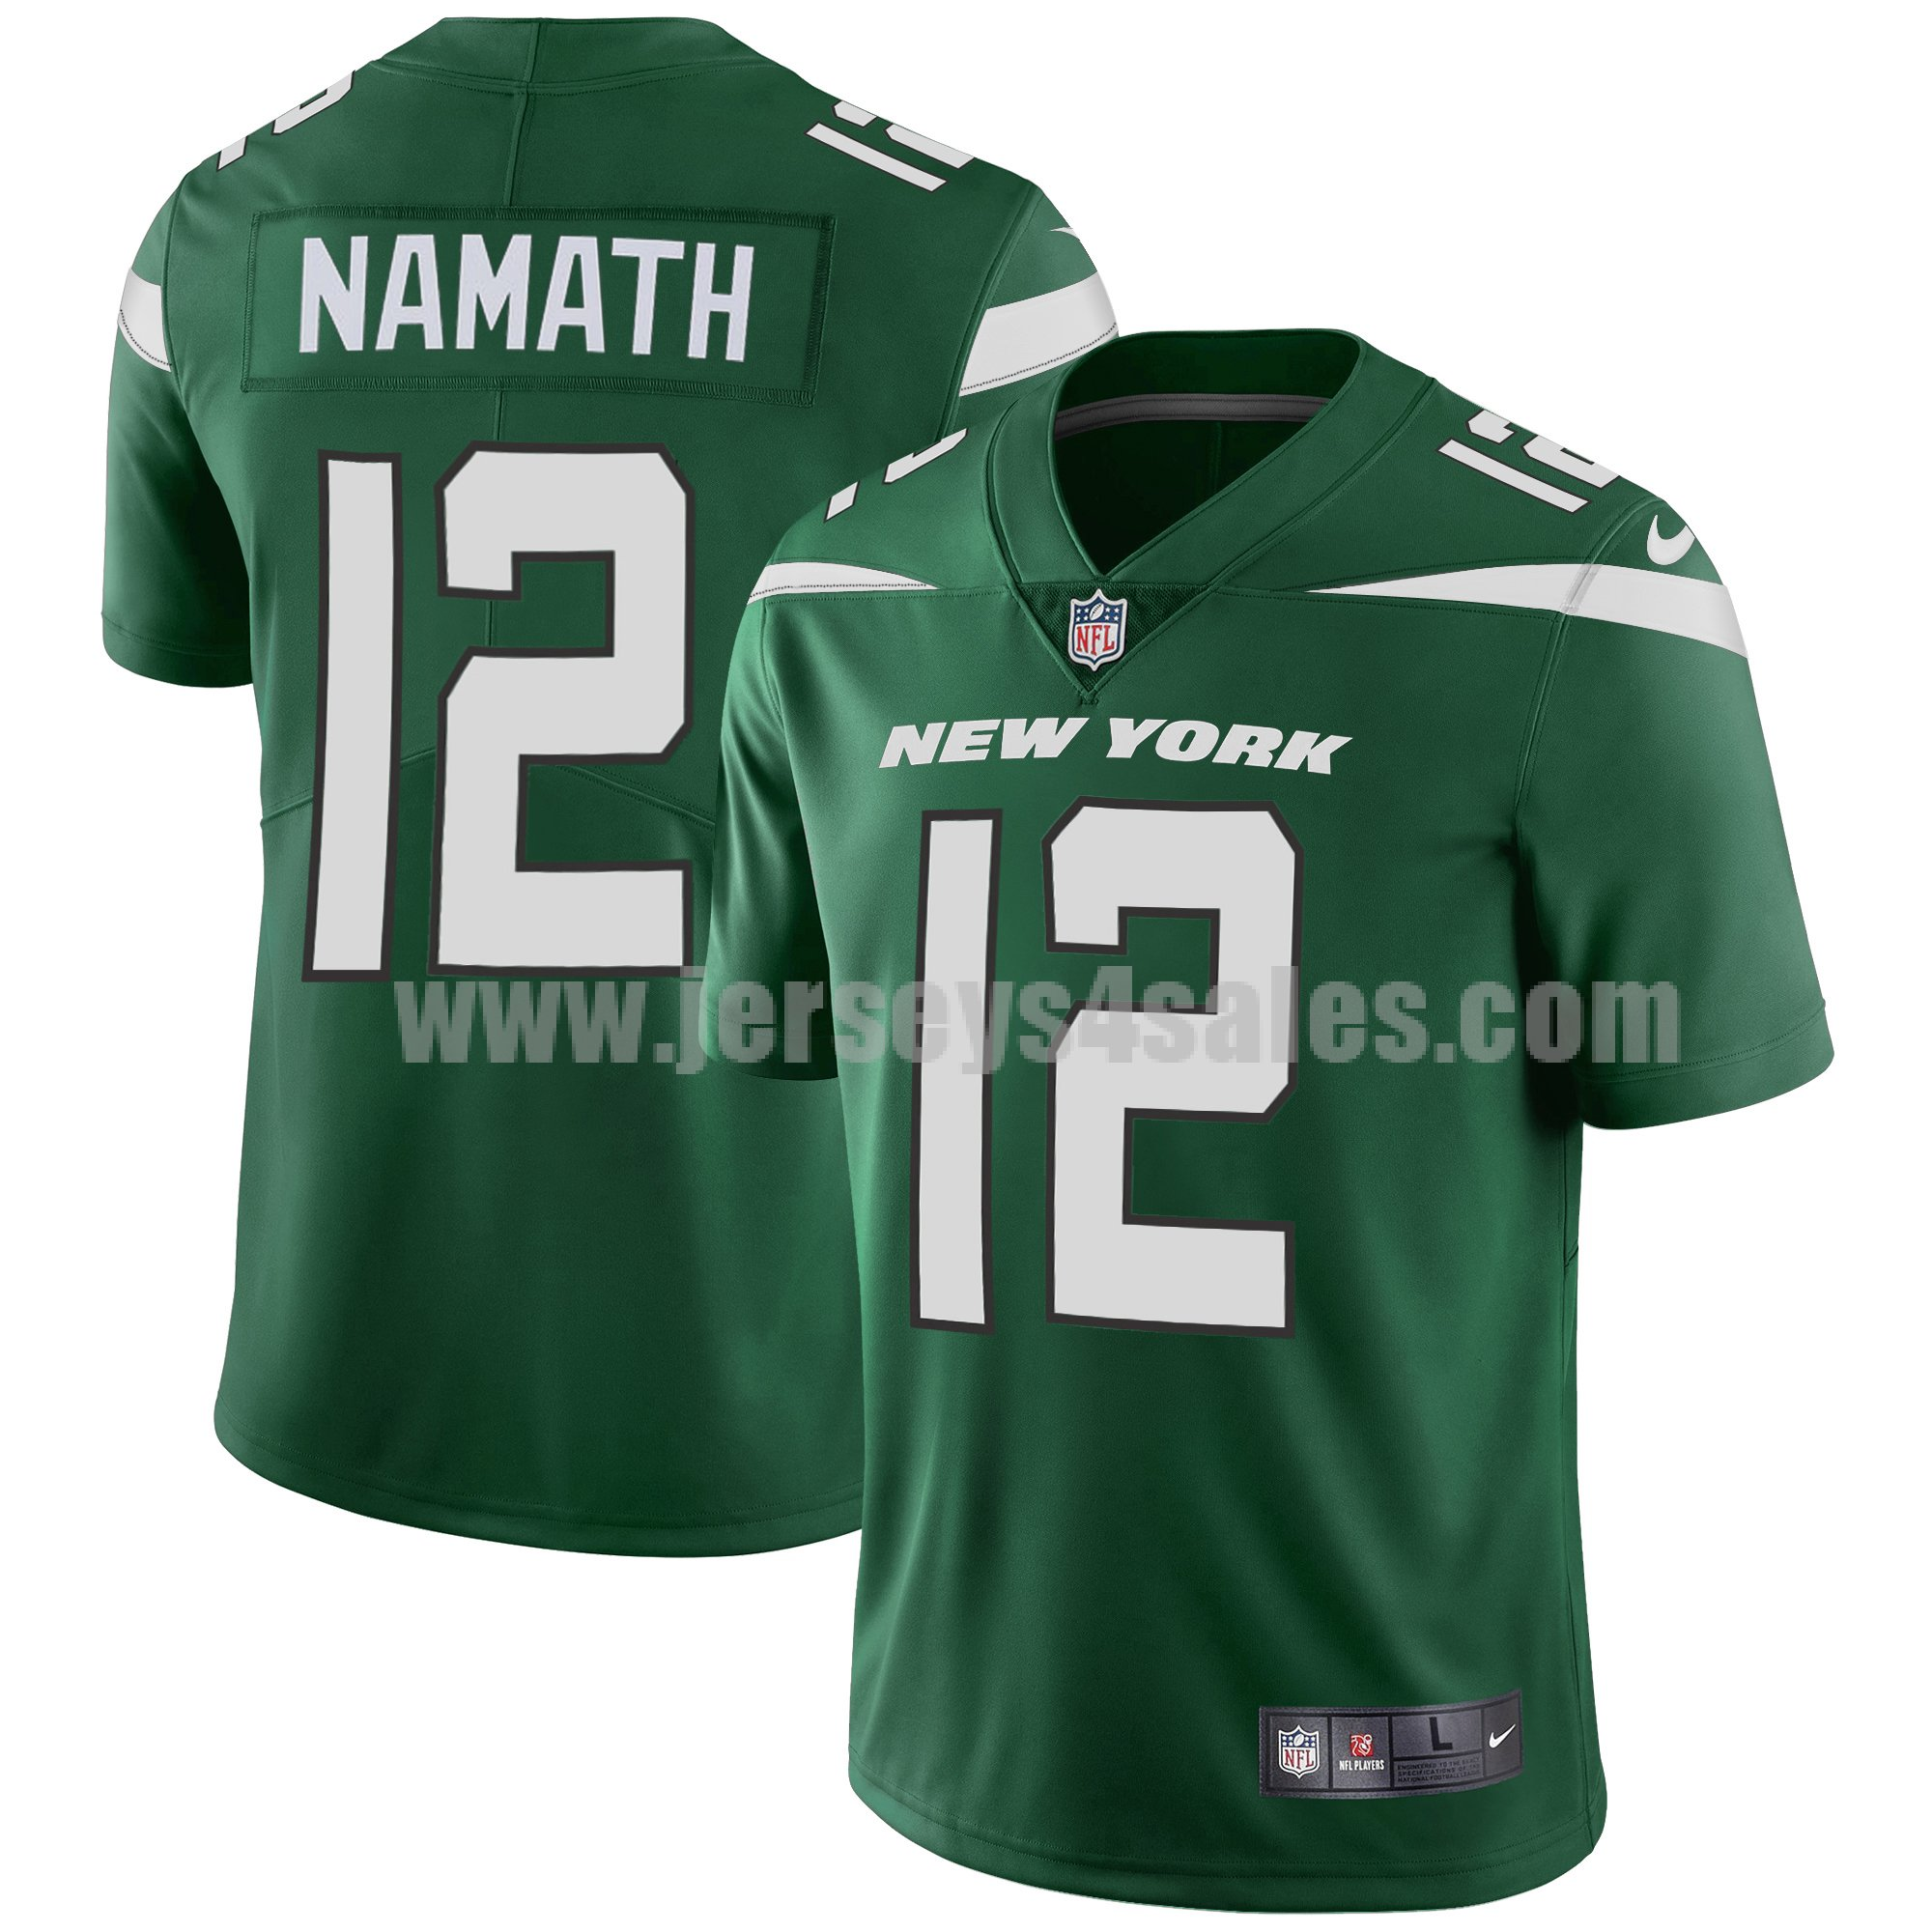 Men's New York Jets #12 Joe Namath Nike Green Limited Jersey